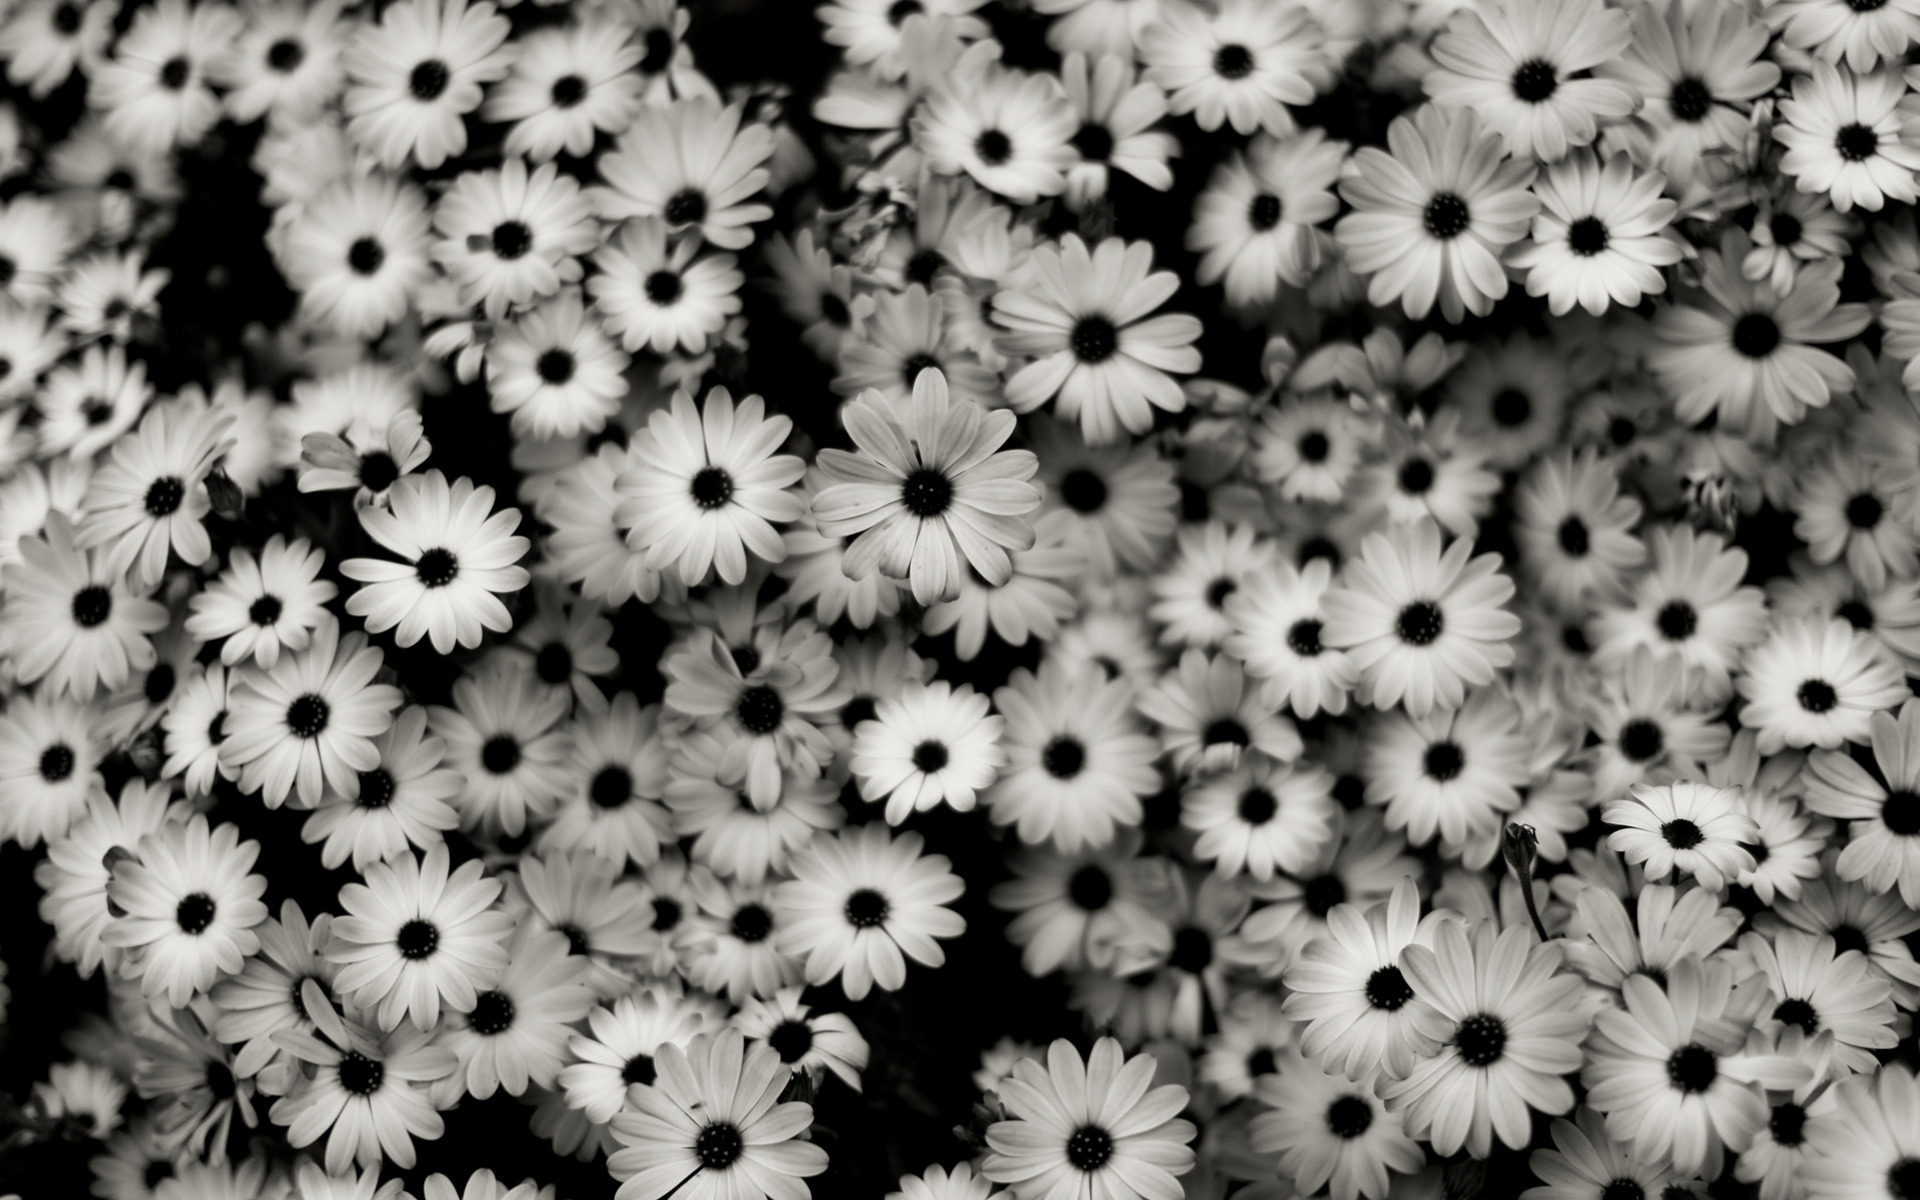 35 HD Black & White Widescreen Backgrounds